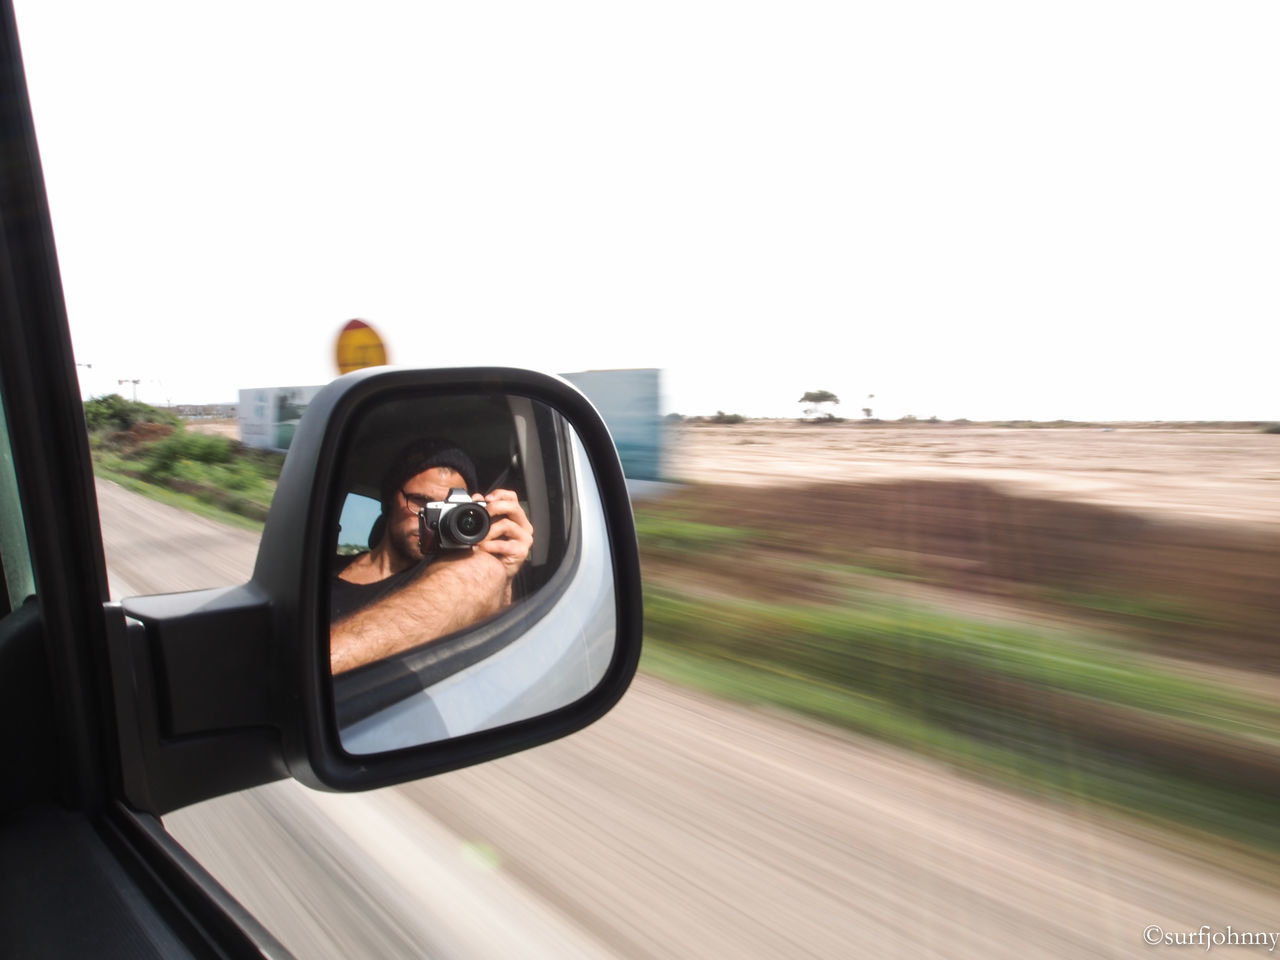 real people, car, transportation, mode of transport, land vehicle, one person, lifestyles, sunglasses, young adult, side-view mirror, leisure activity, young women, headshot, day, holding, photographing, technology, clear sky, men, outdoors, nature, sky, human hand, people